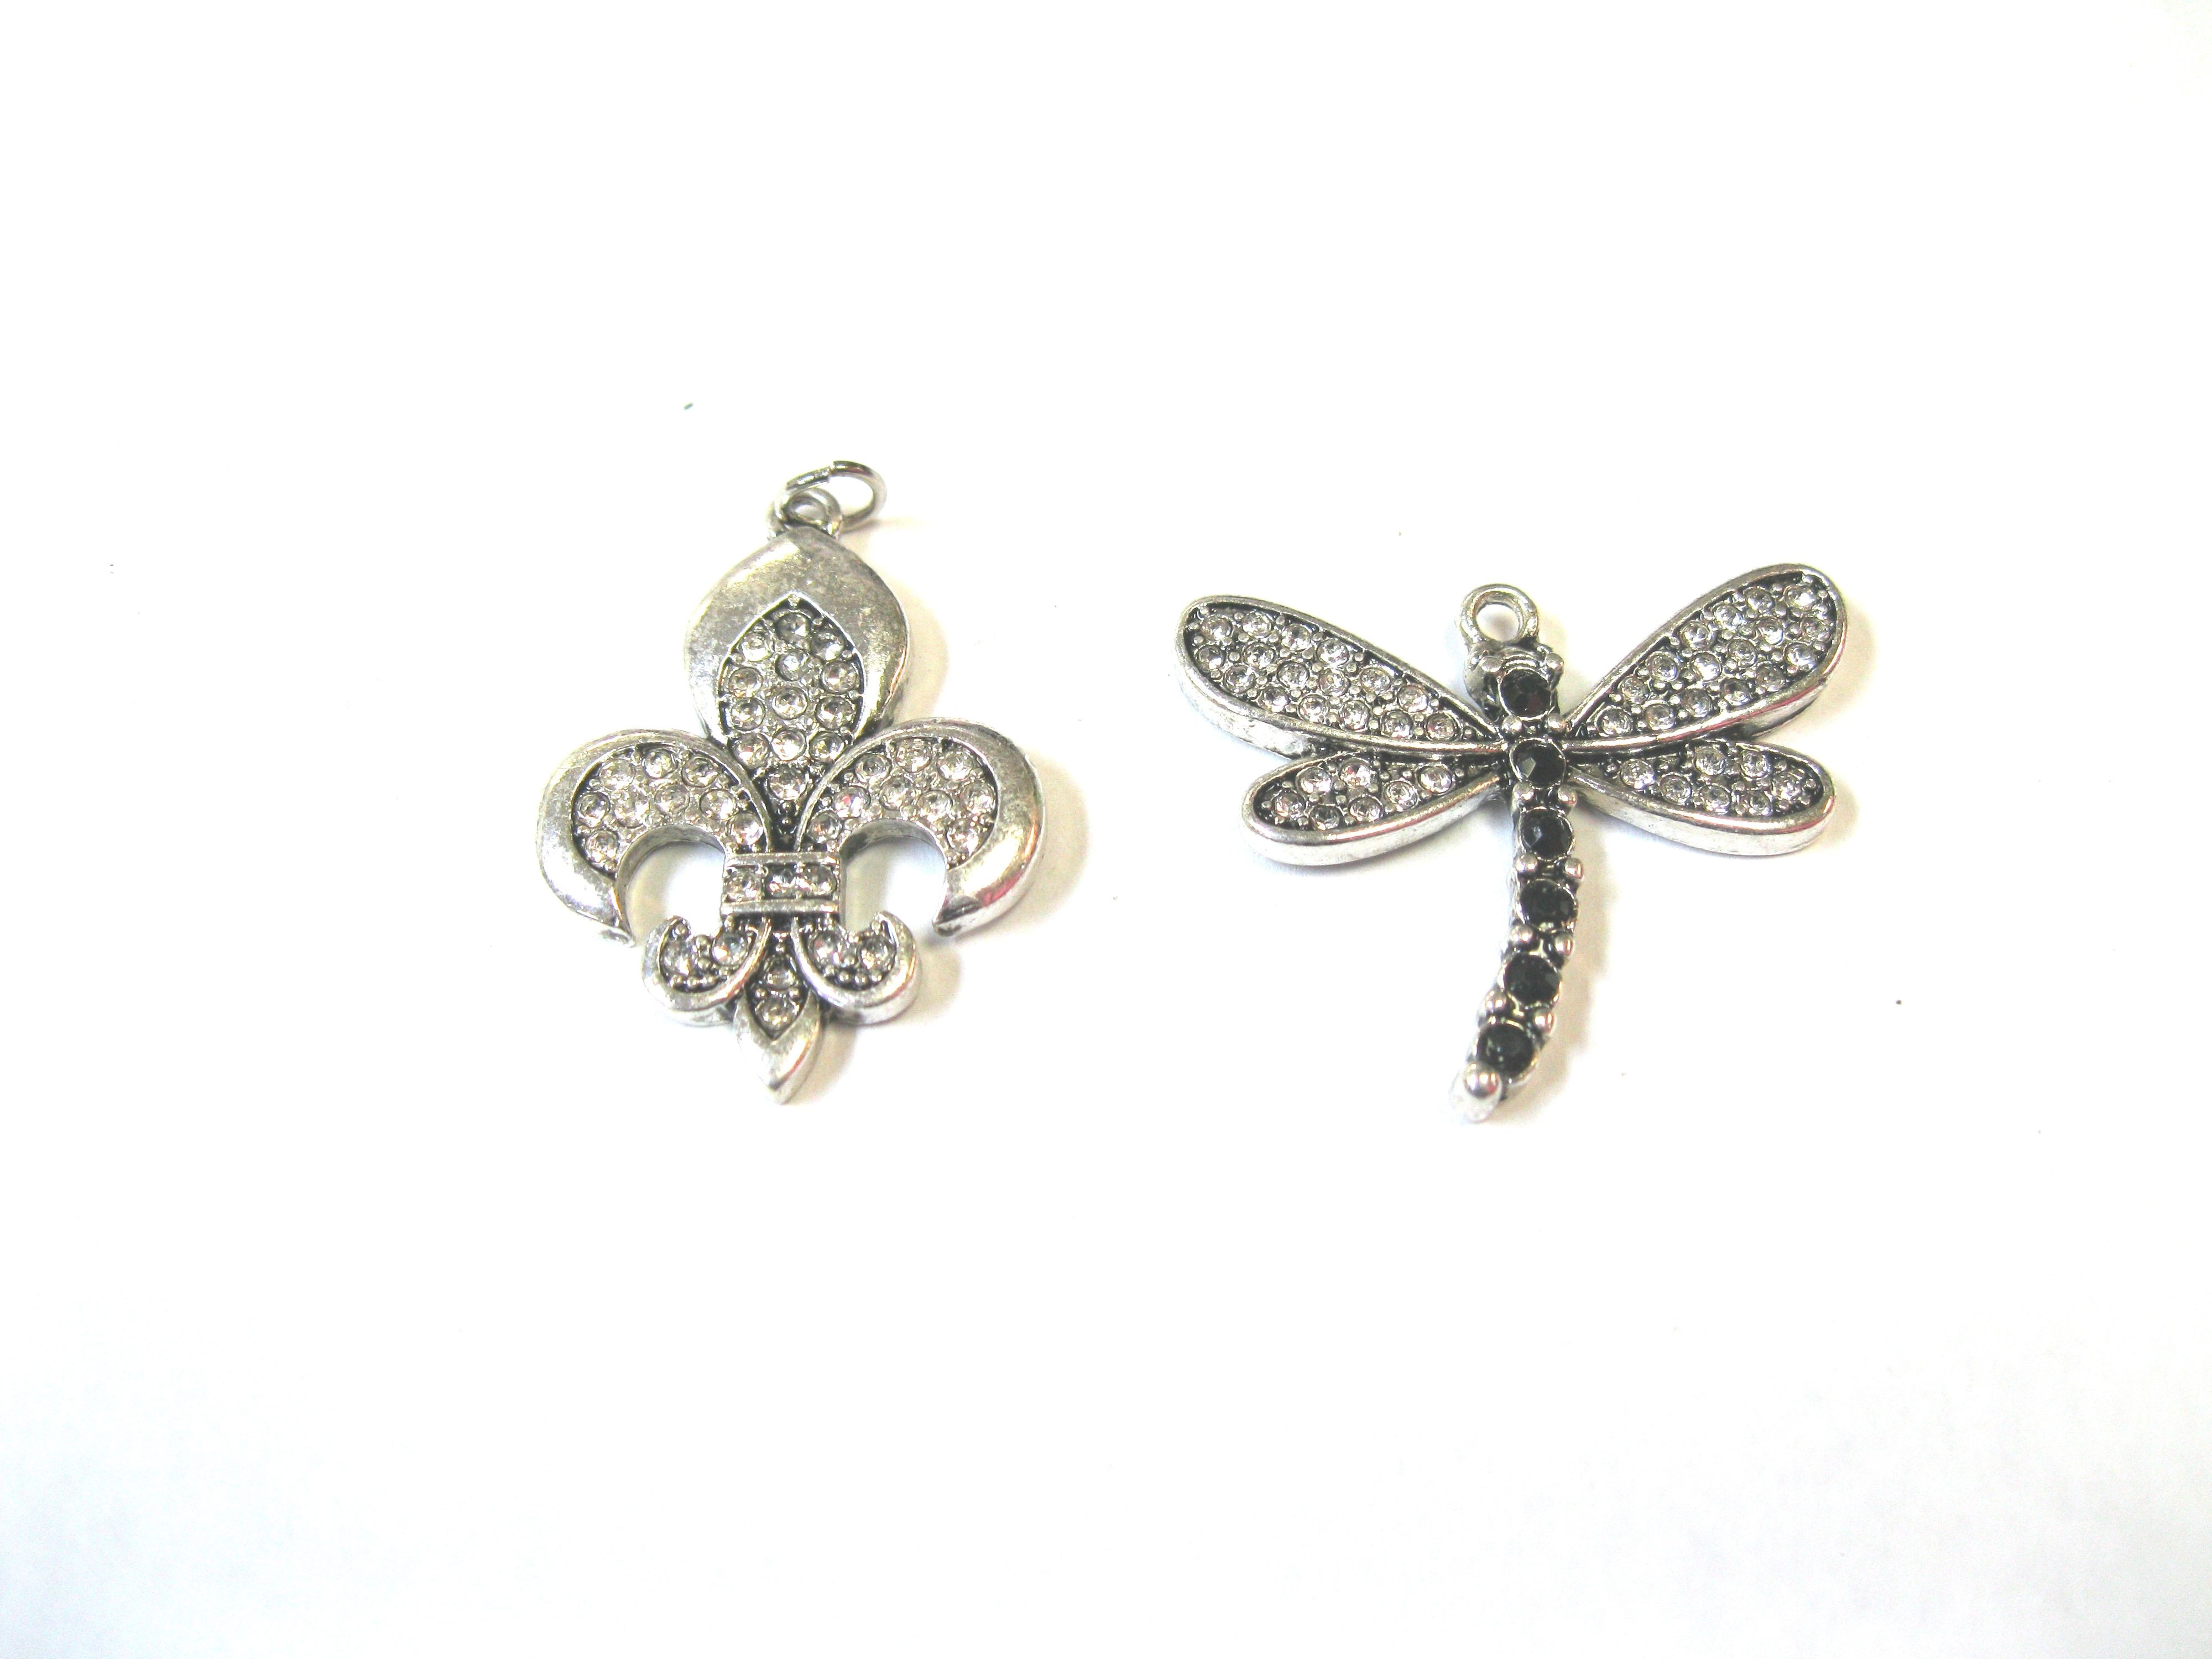 Mosquito/ Fleur de Lis Crystal Charms. Contact us for details or to order at alice@atgtexas.com